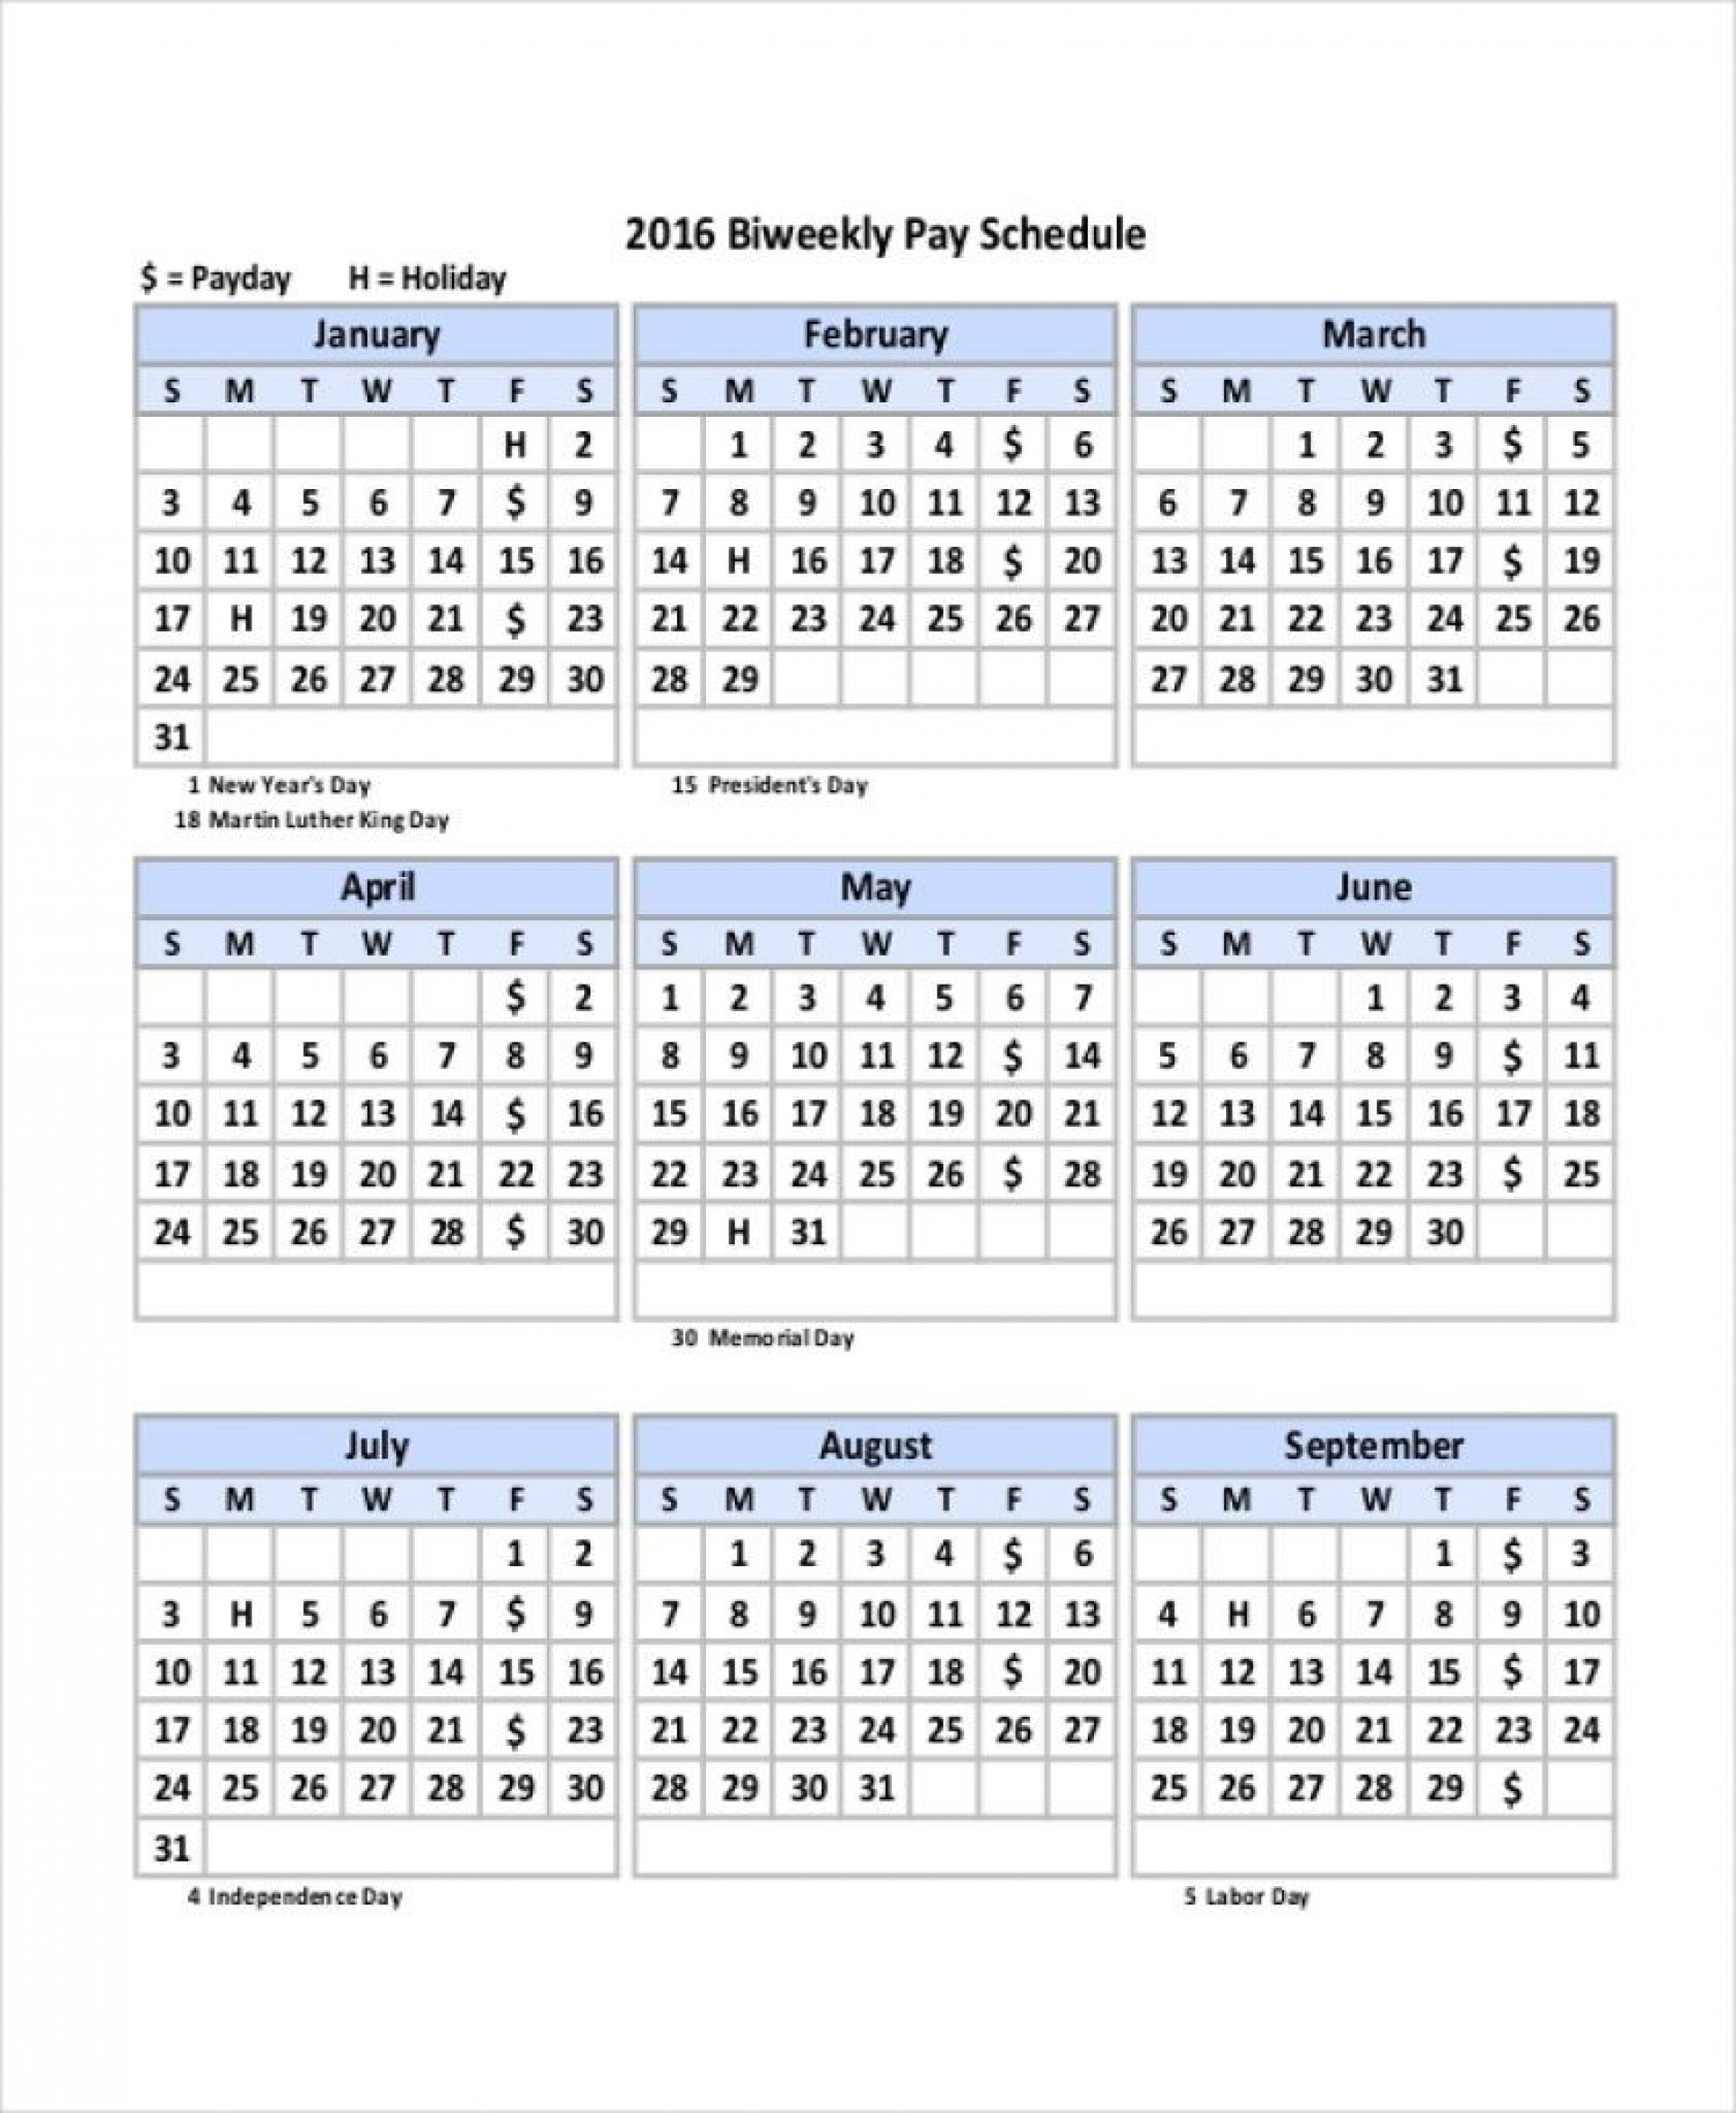 003 Outstanding Payroll Calendar Template 2020 Concept  Biweekly Schedule Excel Free1920